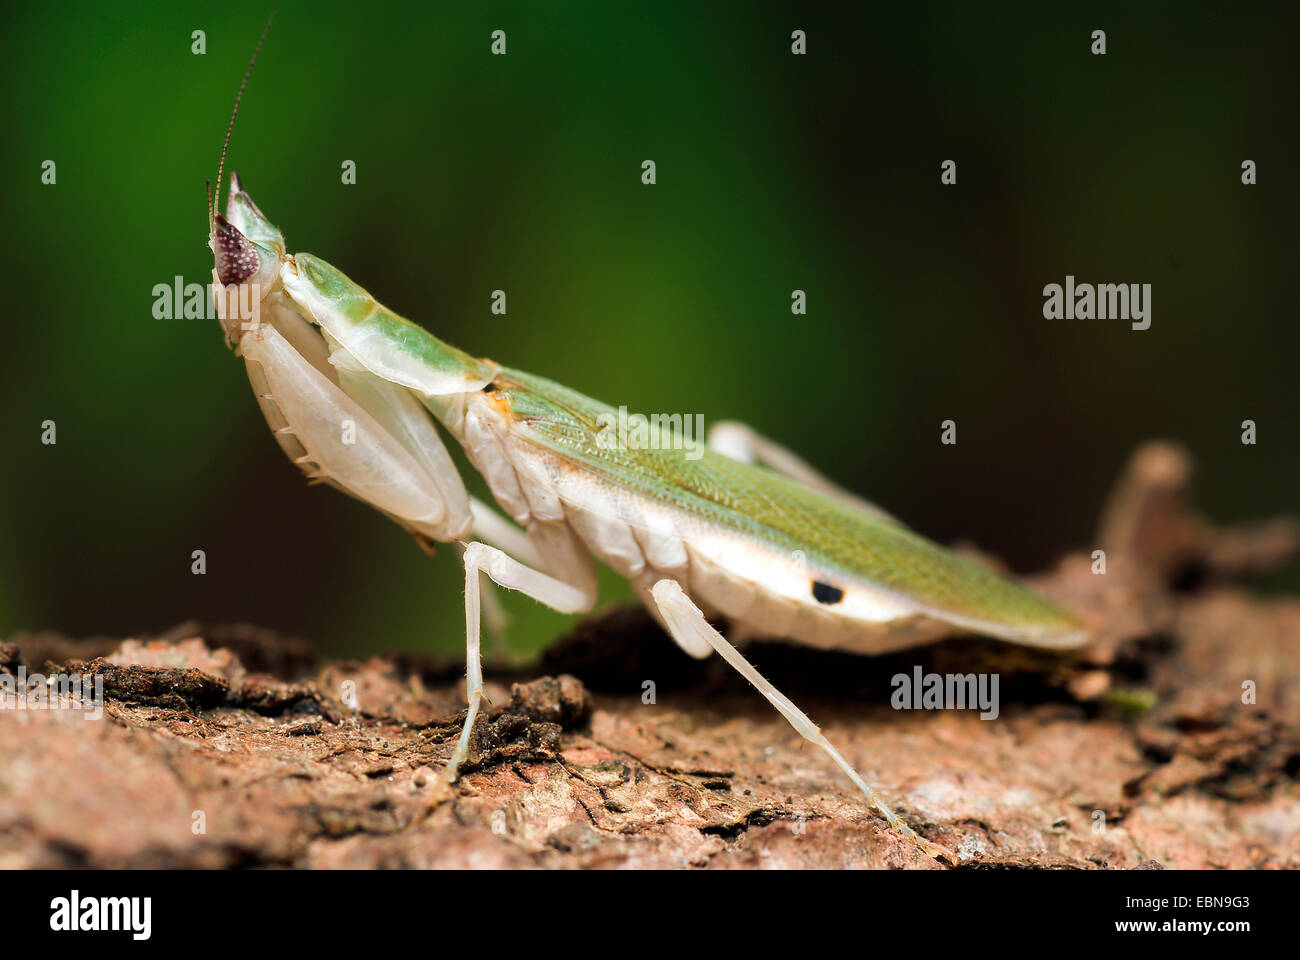 Gambian Spotted-eye Flower Mantis (Pseudoharpax virescens), female - Stock Image